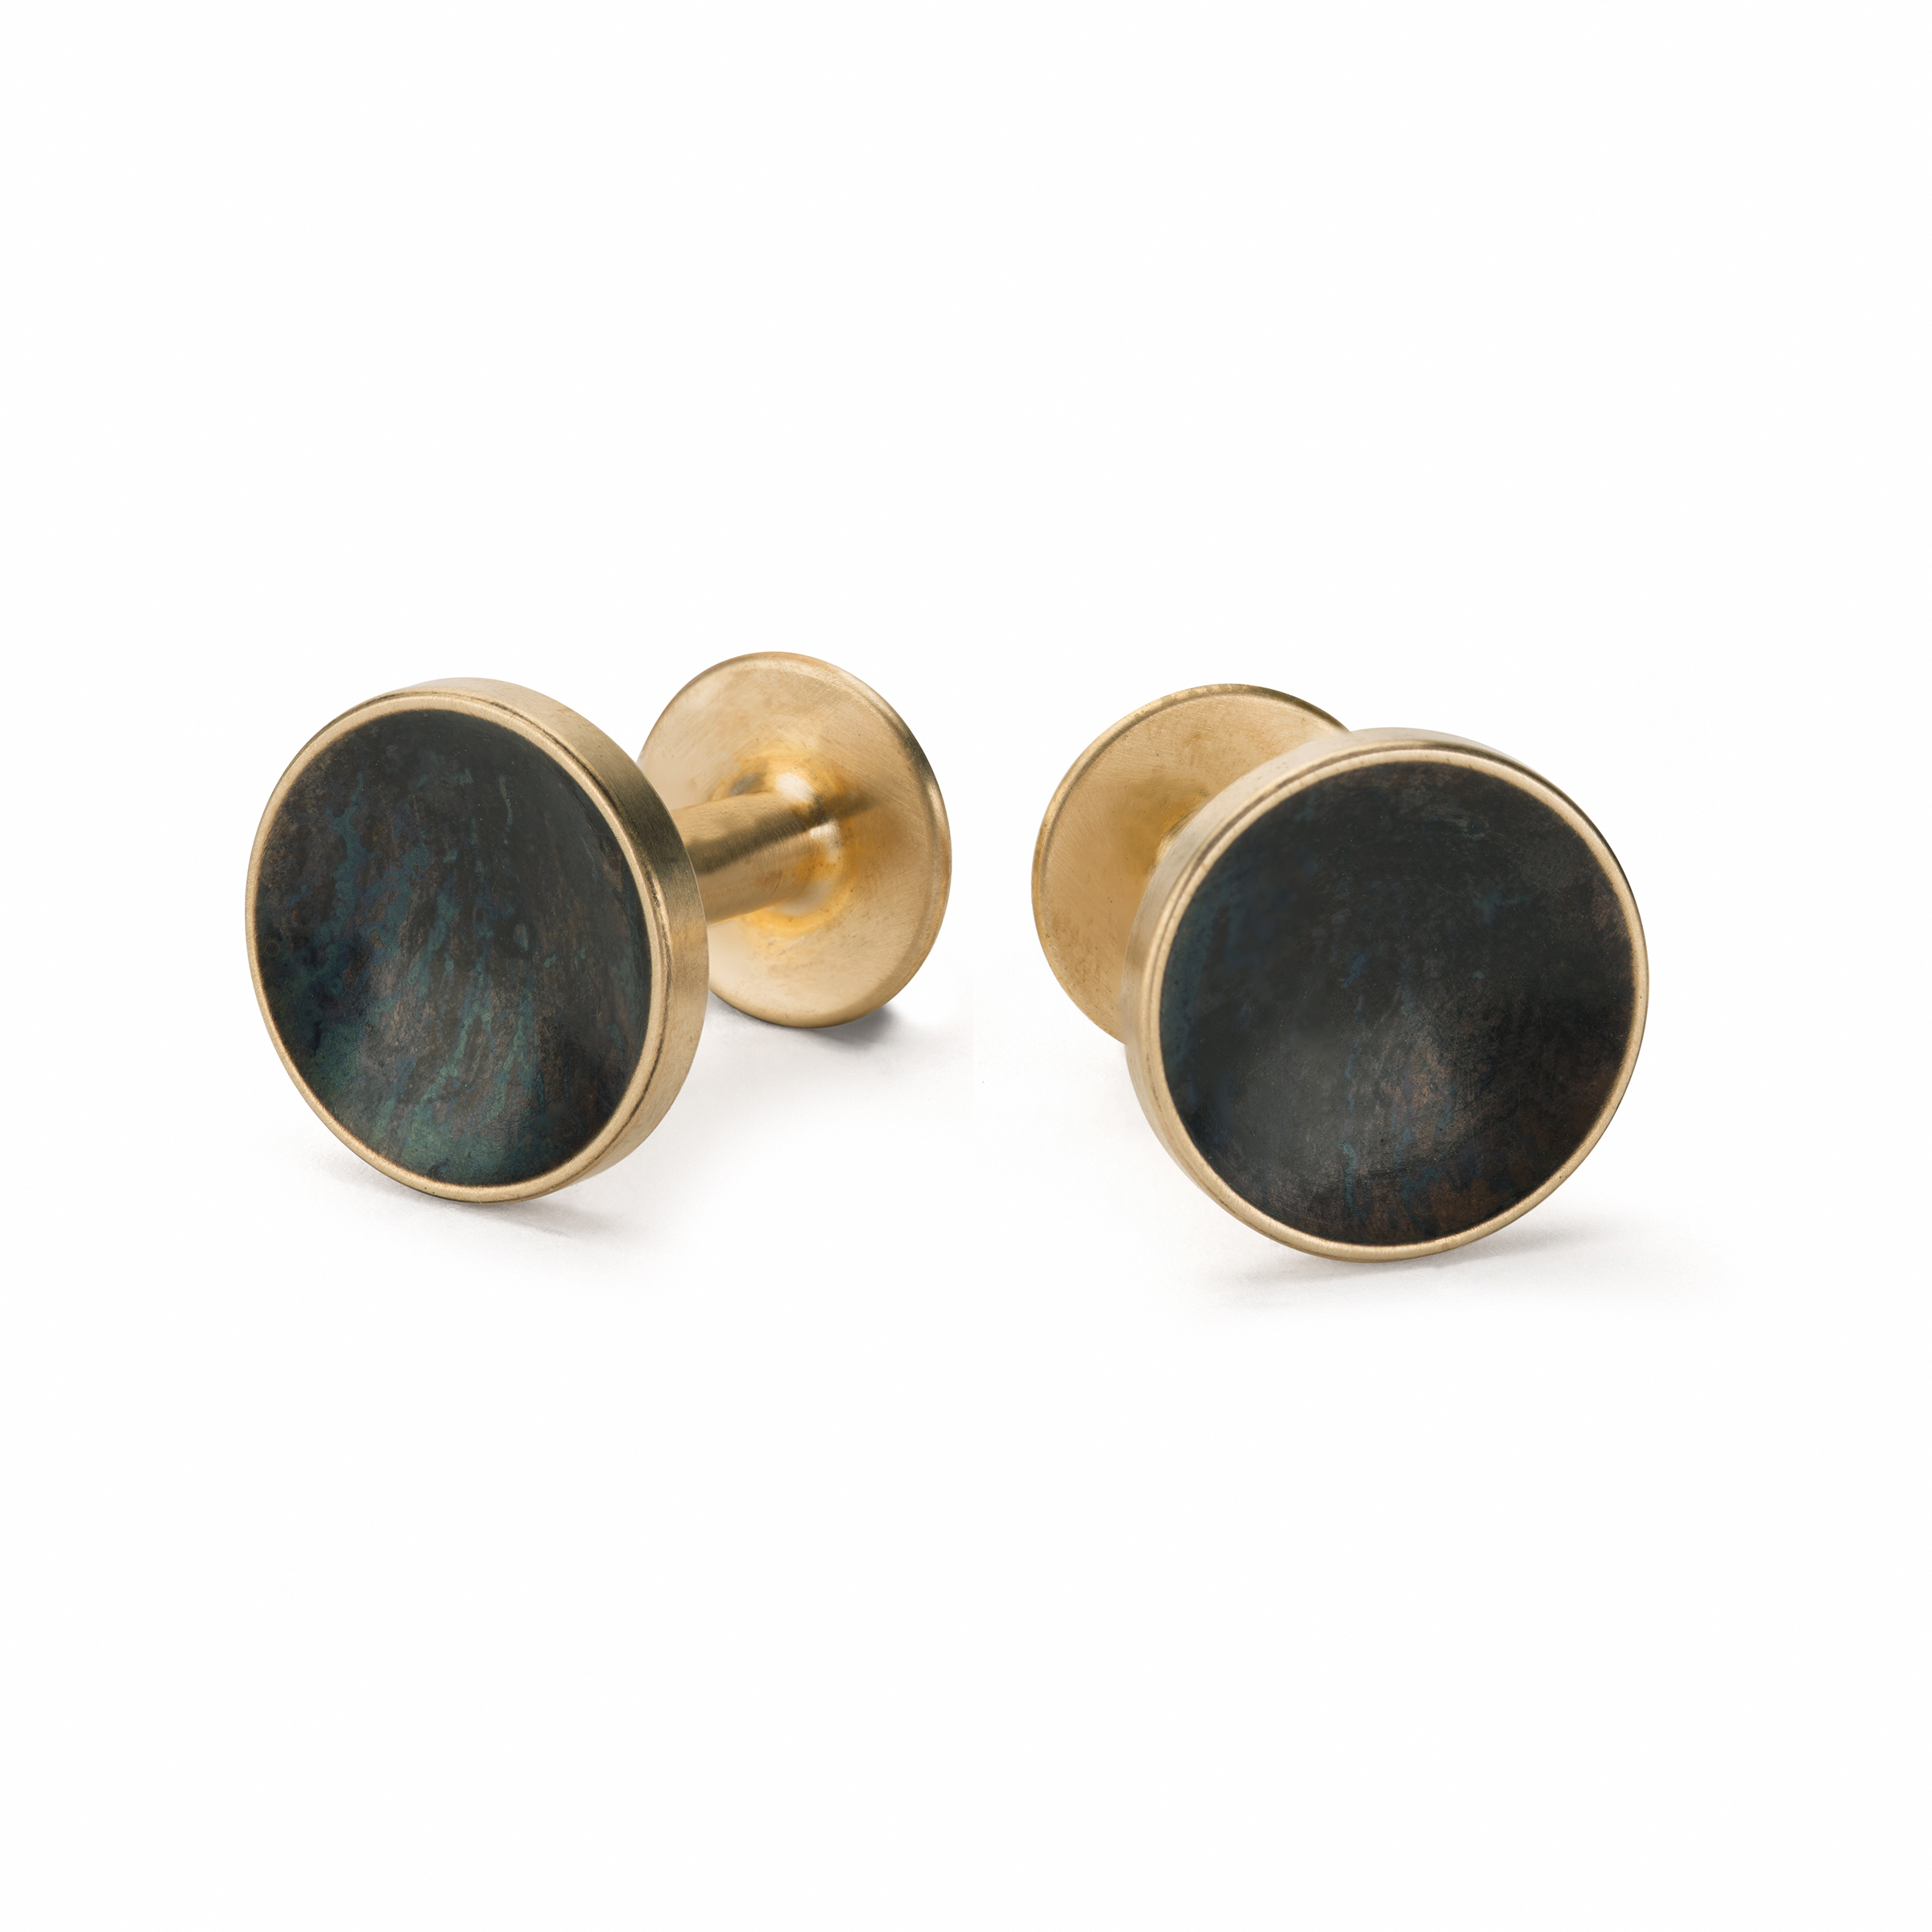 NEW Alice Made This Mens Patina Cufflinks in Quink Bayley.jpg